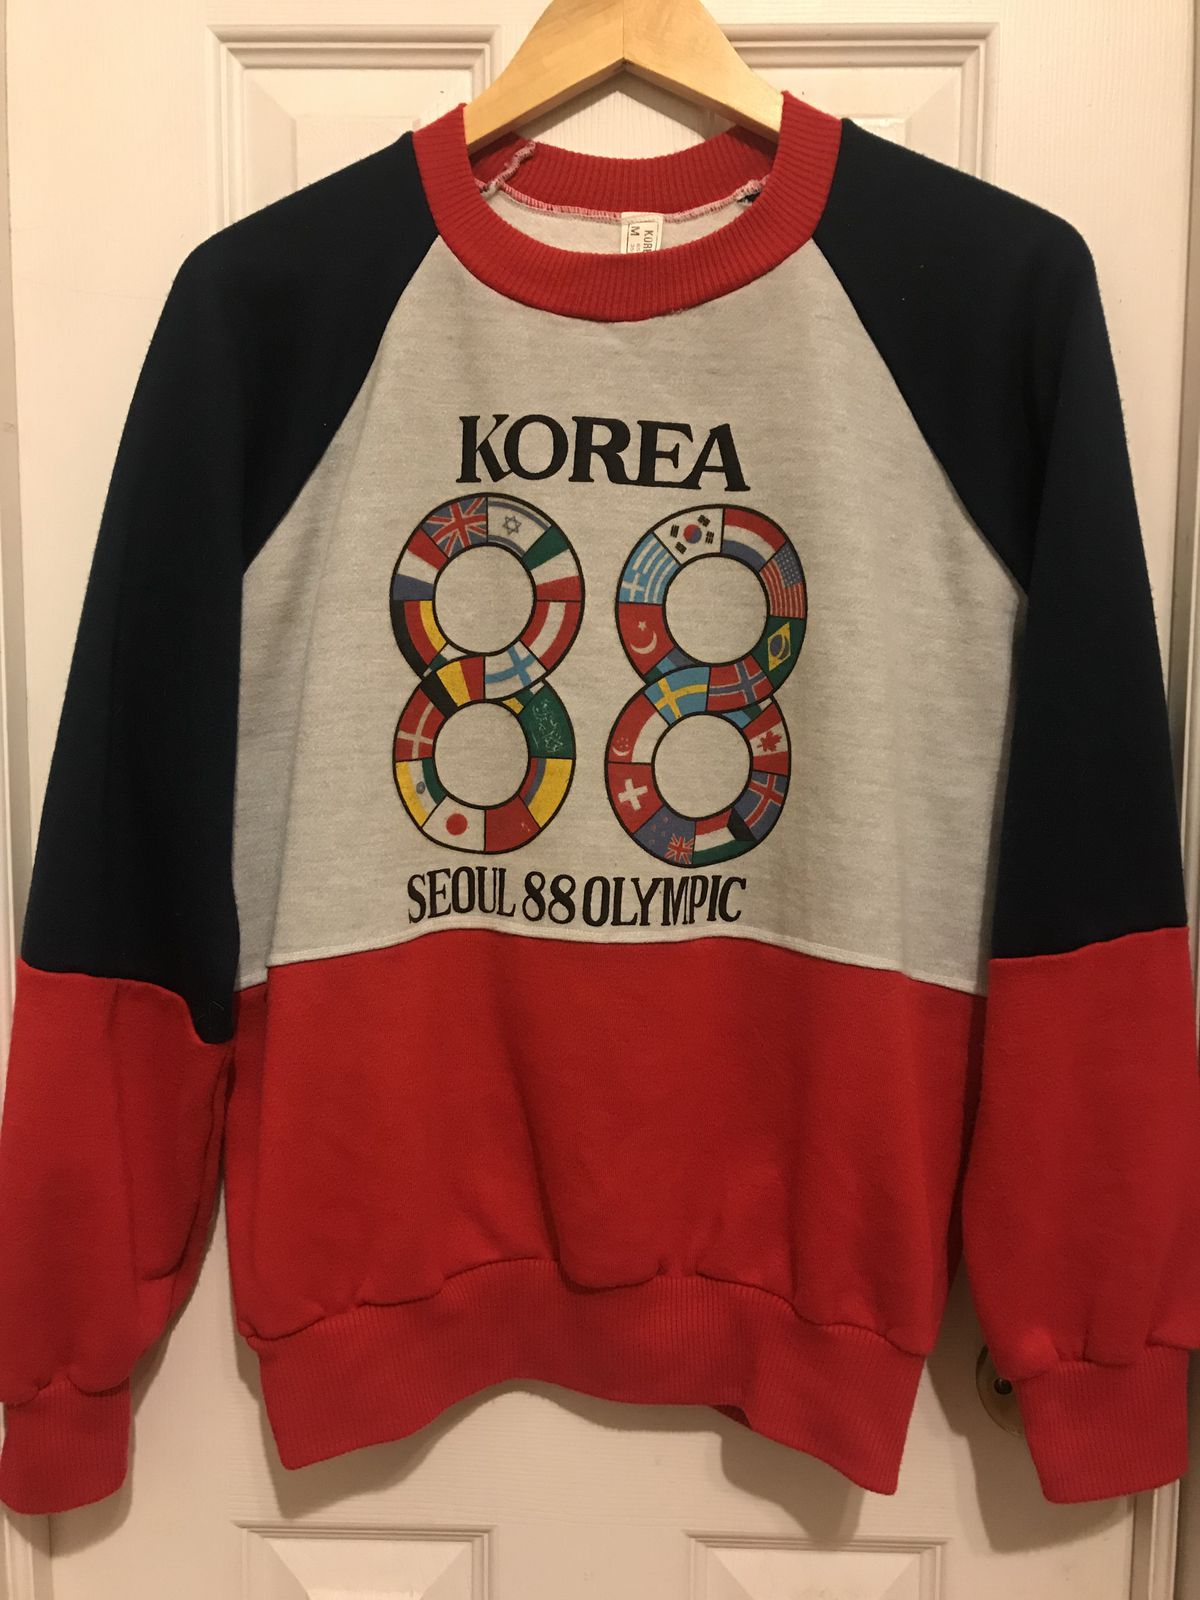 A sweater from the 1988 Olympics in Seoul, South Korea.